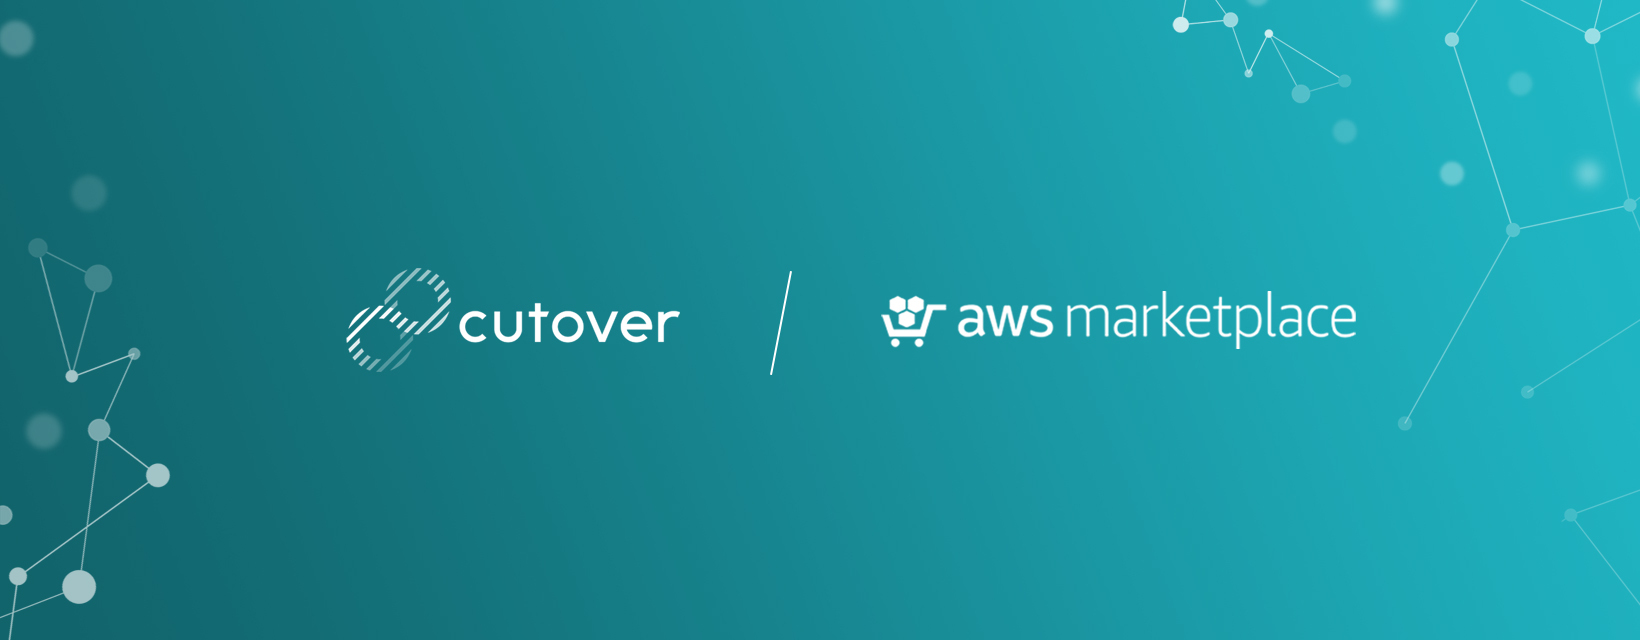 Cutover Work Orchestration & Observability Platform on AWS Marketplace